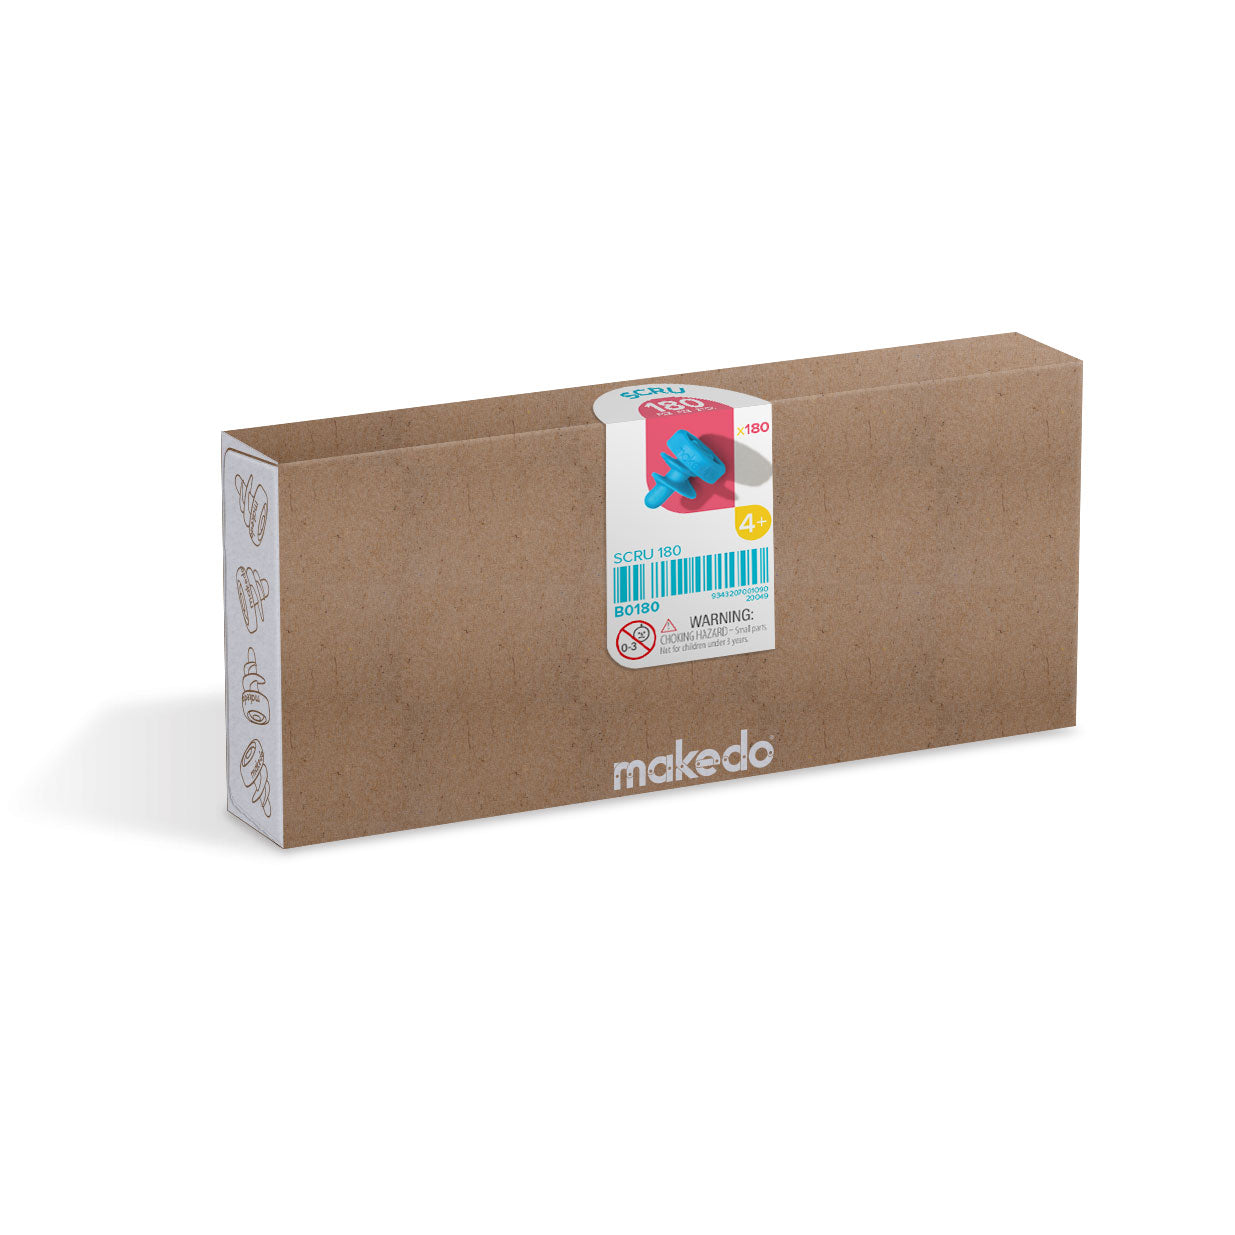 Makedo cardboard construction system - SCRU 180 piece kit.